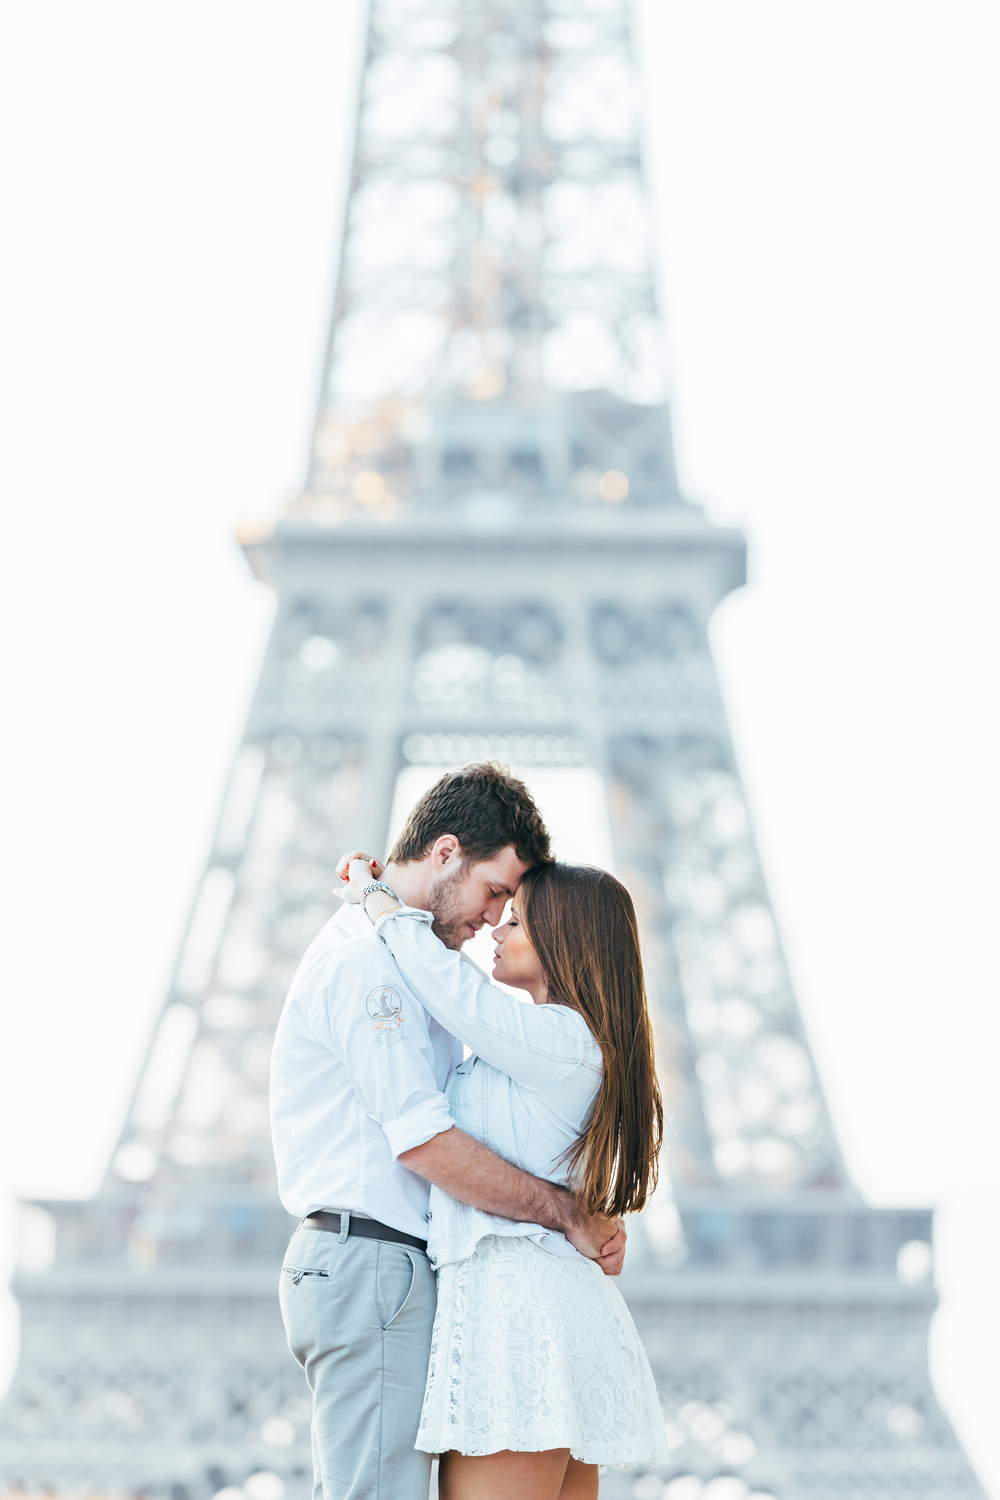 Photographer in Paris Tour Eiffel Lovestory Trocadero Iheartparisfr